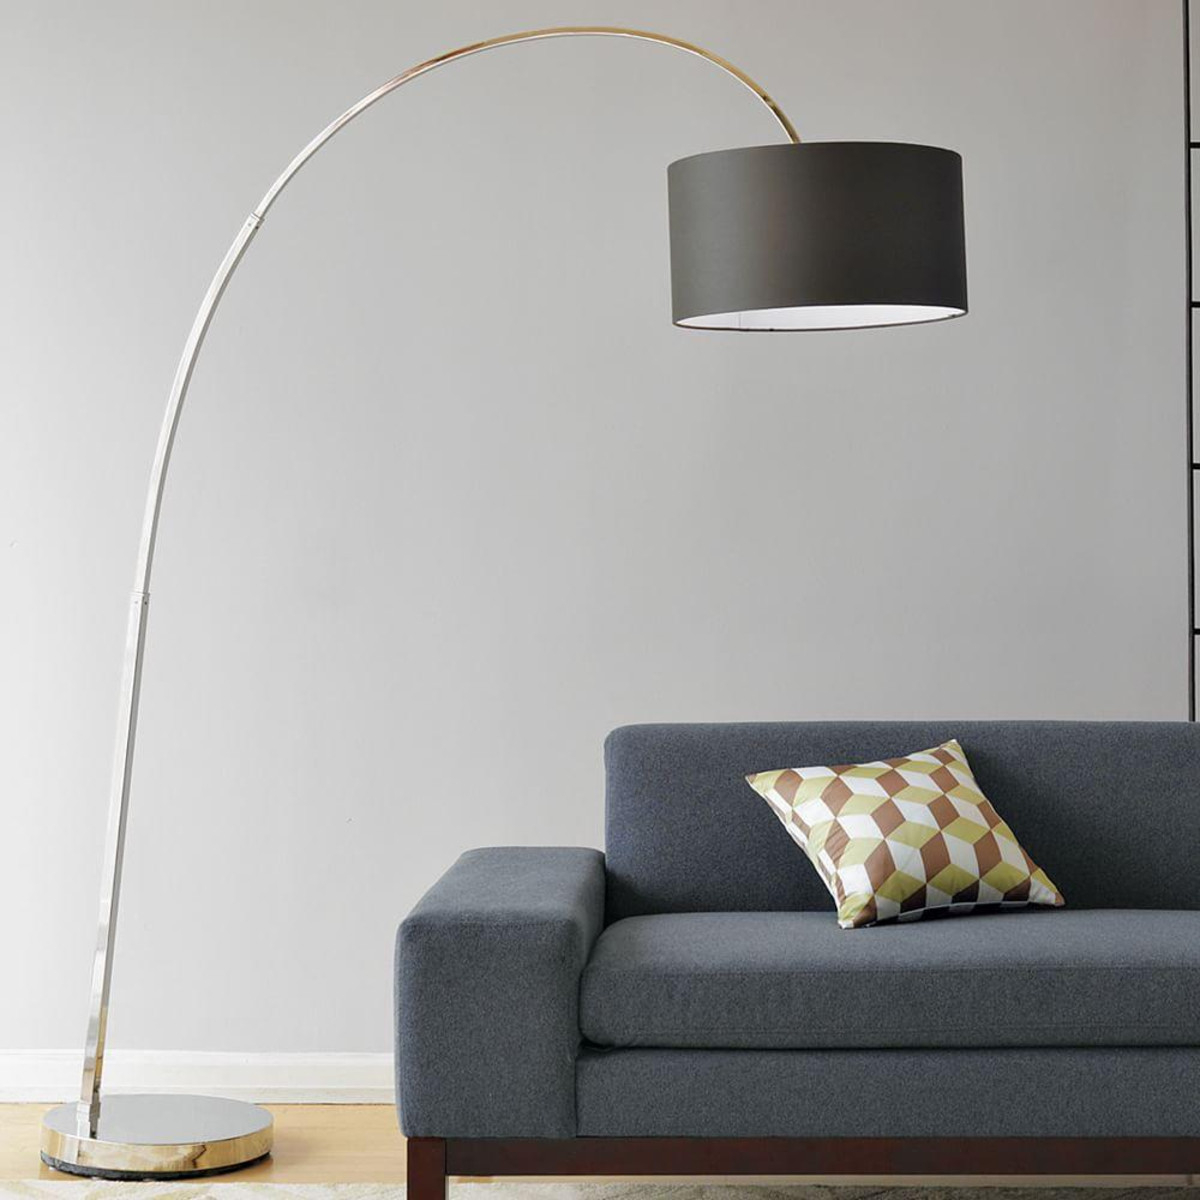 Arch Sofa Floor Lamp 22